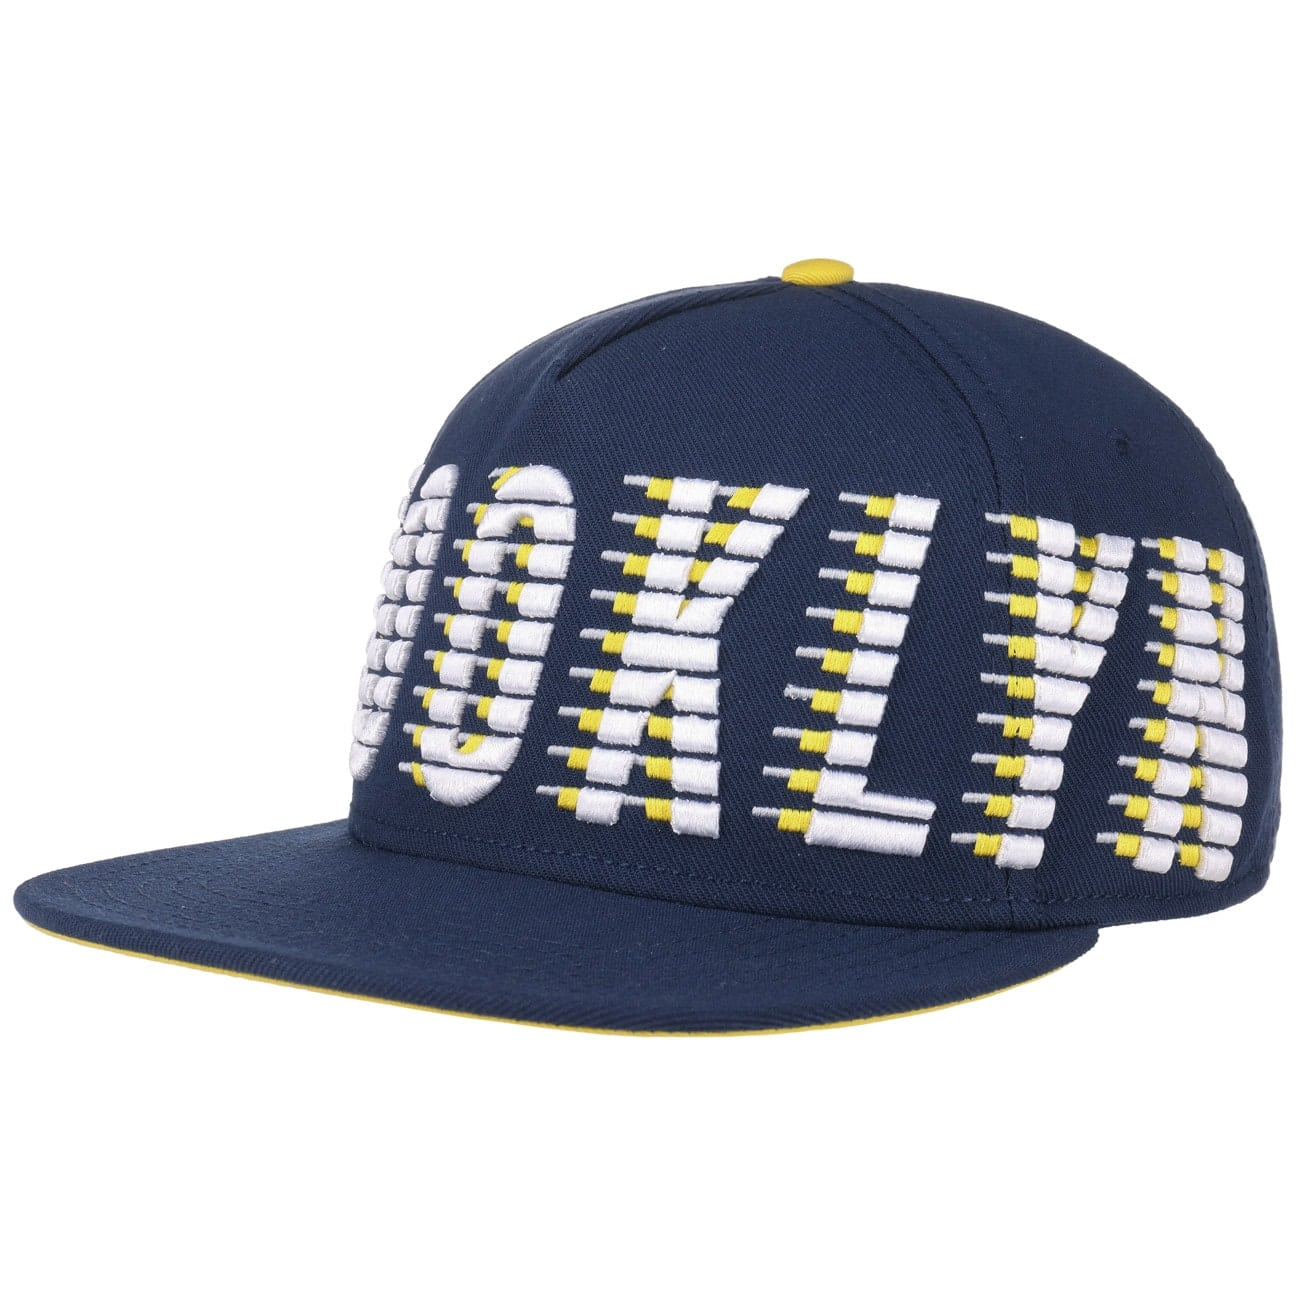 Gorra Brooklyn Athletics by Cayler & Sons  gorra de baseball